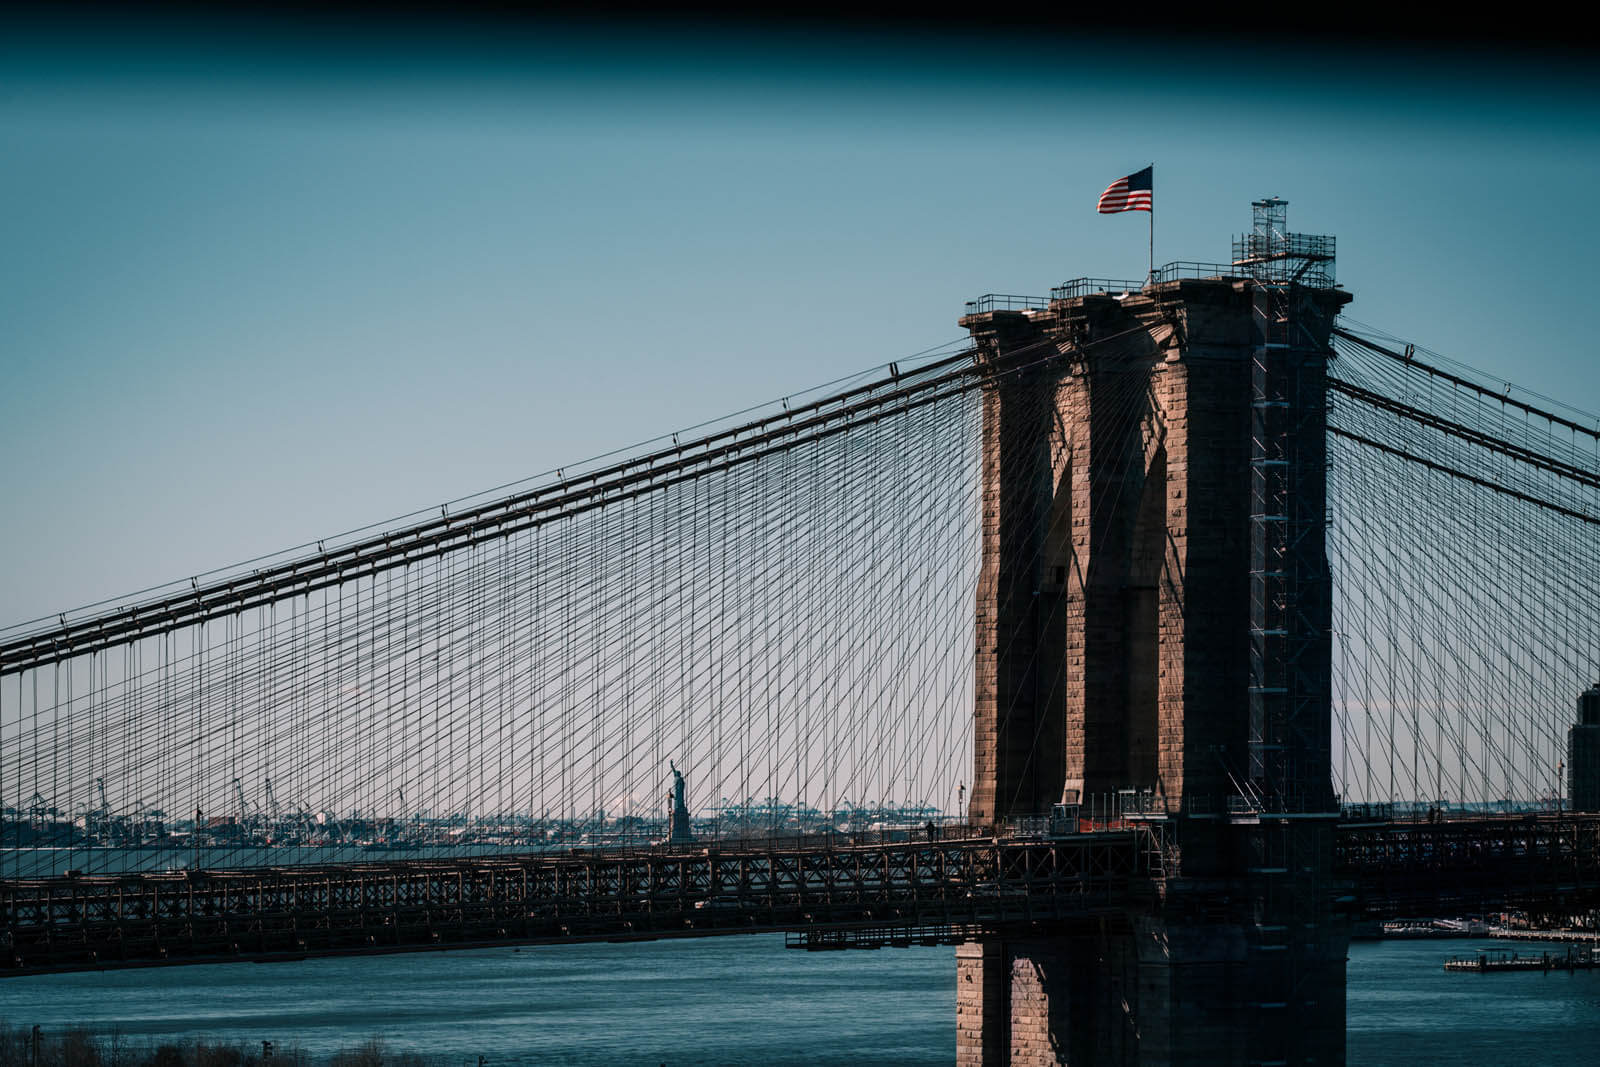 View of Statue of Liberty and Brooklyn Bridge from Manhattan Bridge in NYC